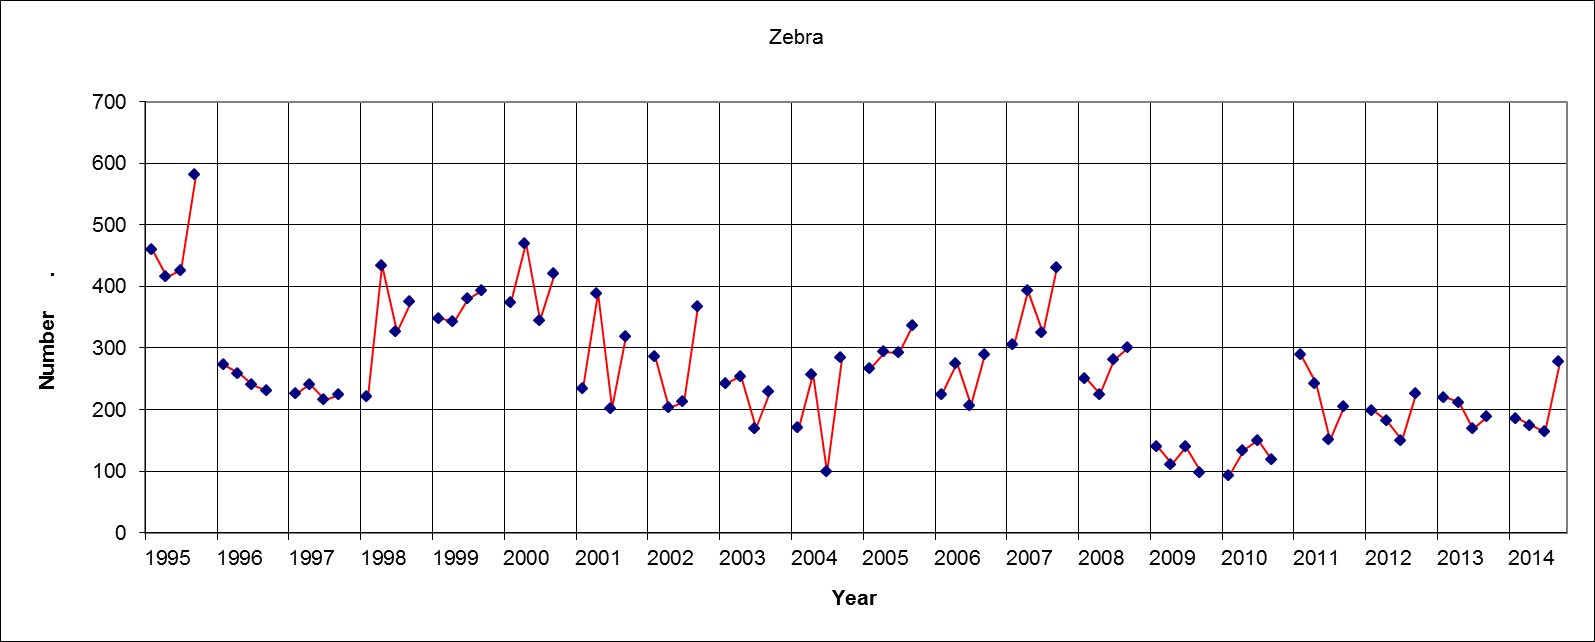 Zebra Results (Four figures each year = Sat am, Sat pm, Sun am, Sun pm